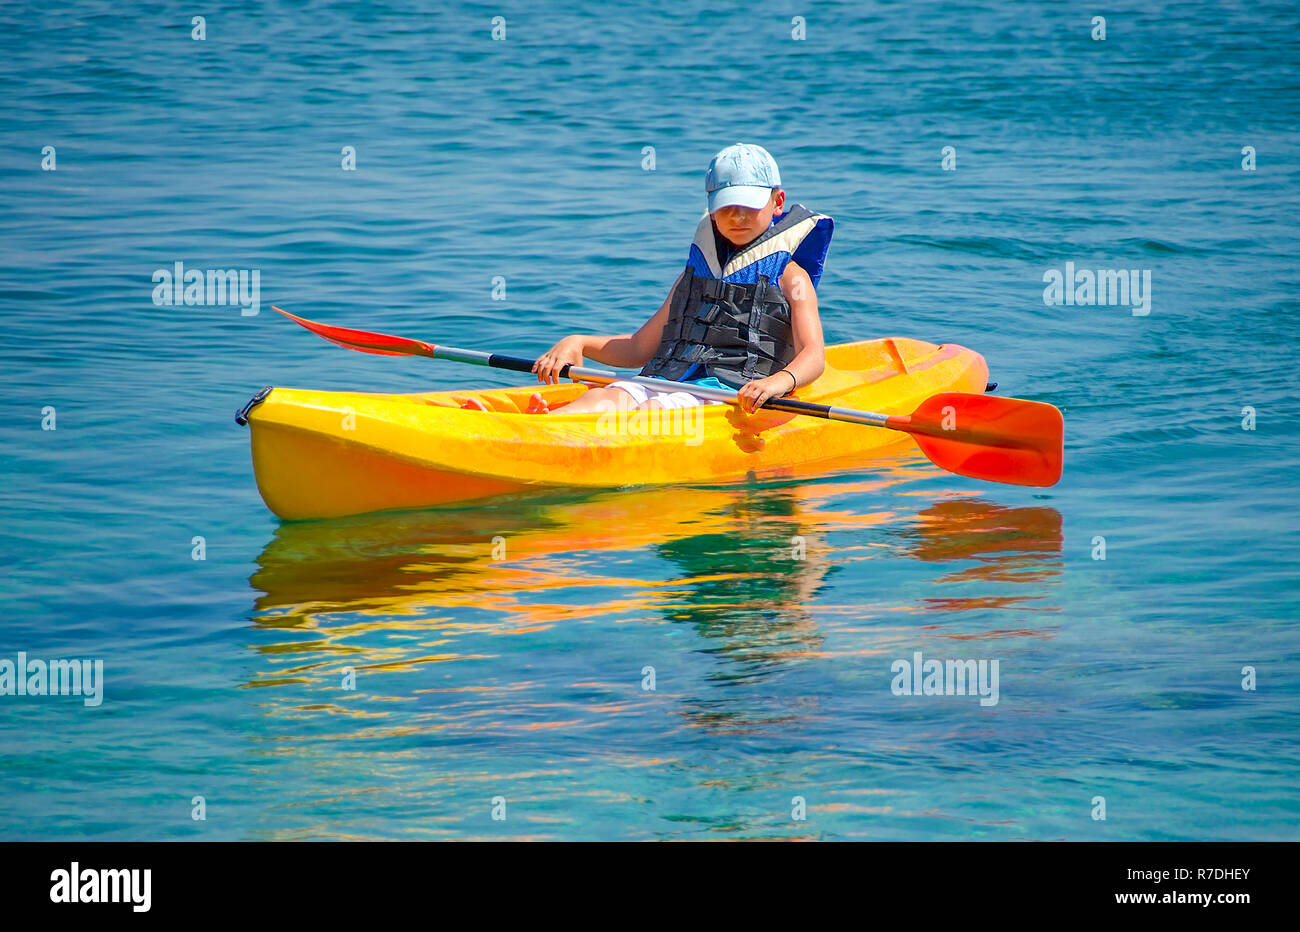 First kayaking lessons. Boy with blue hat and life buoy suit in kayak lessons during summer vacations in an island of Greece - Stock Image